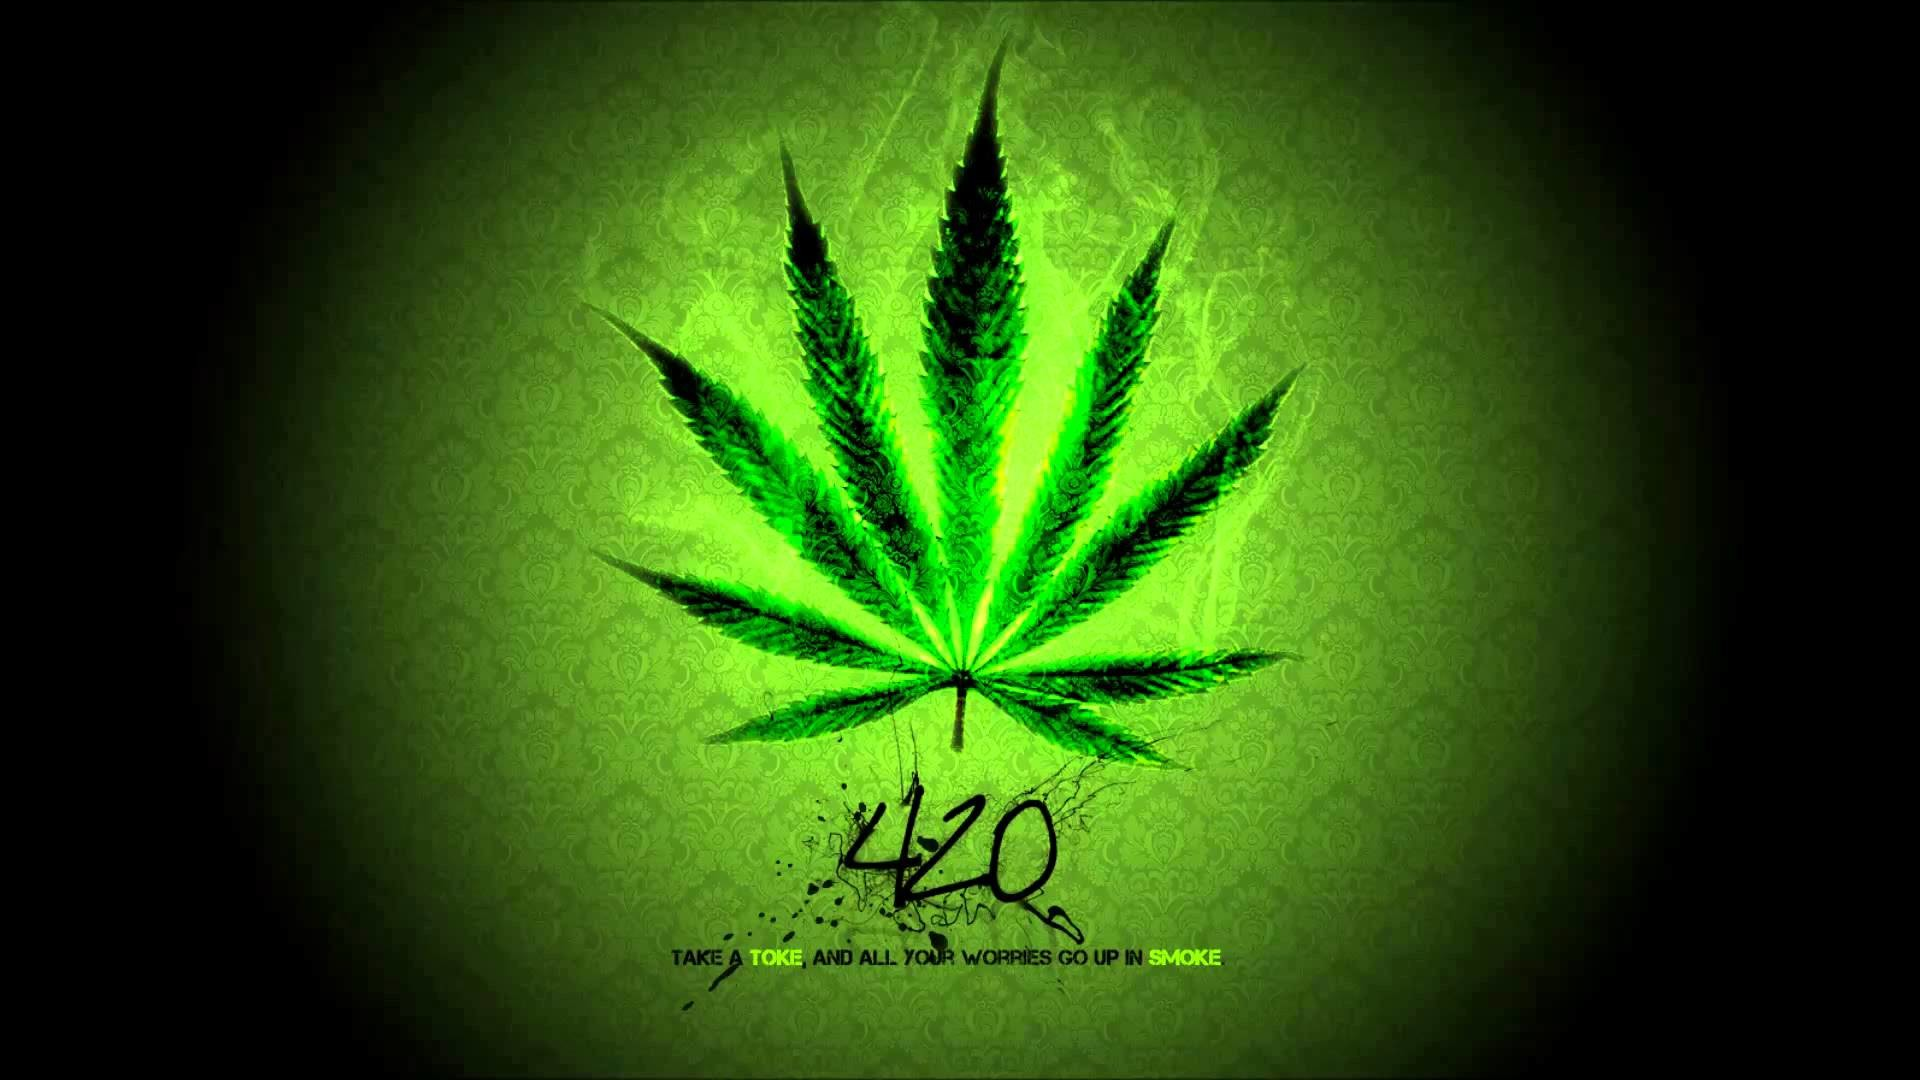 Weed leaf clipart 1600x900 svg black and white stock Trippy Pot Leaf Wallpapers (55+ images) svg black and white stock